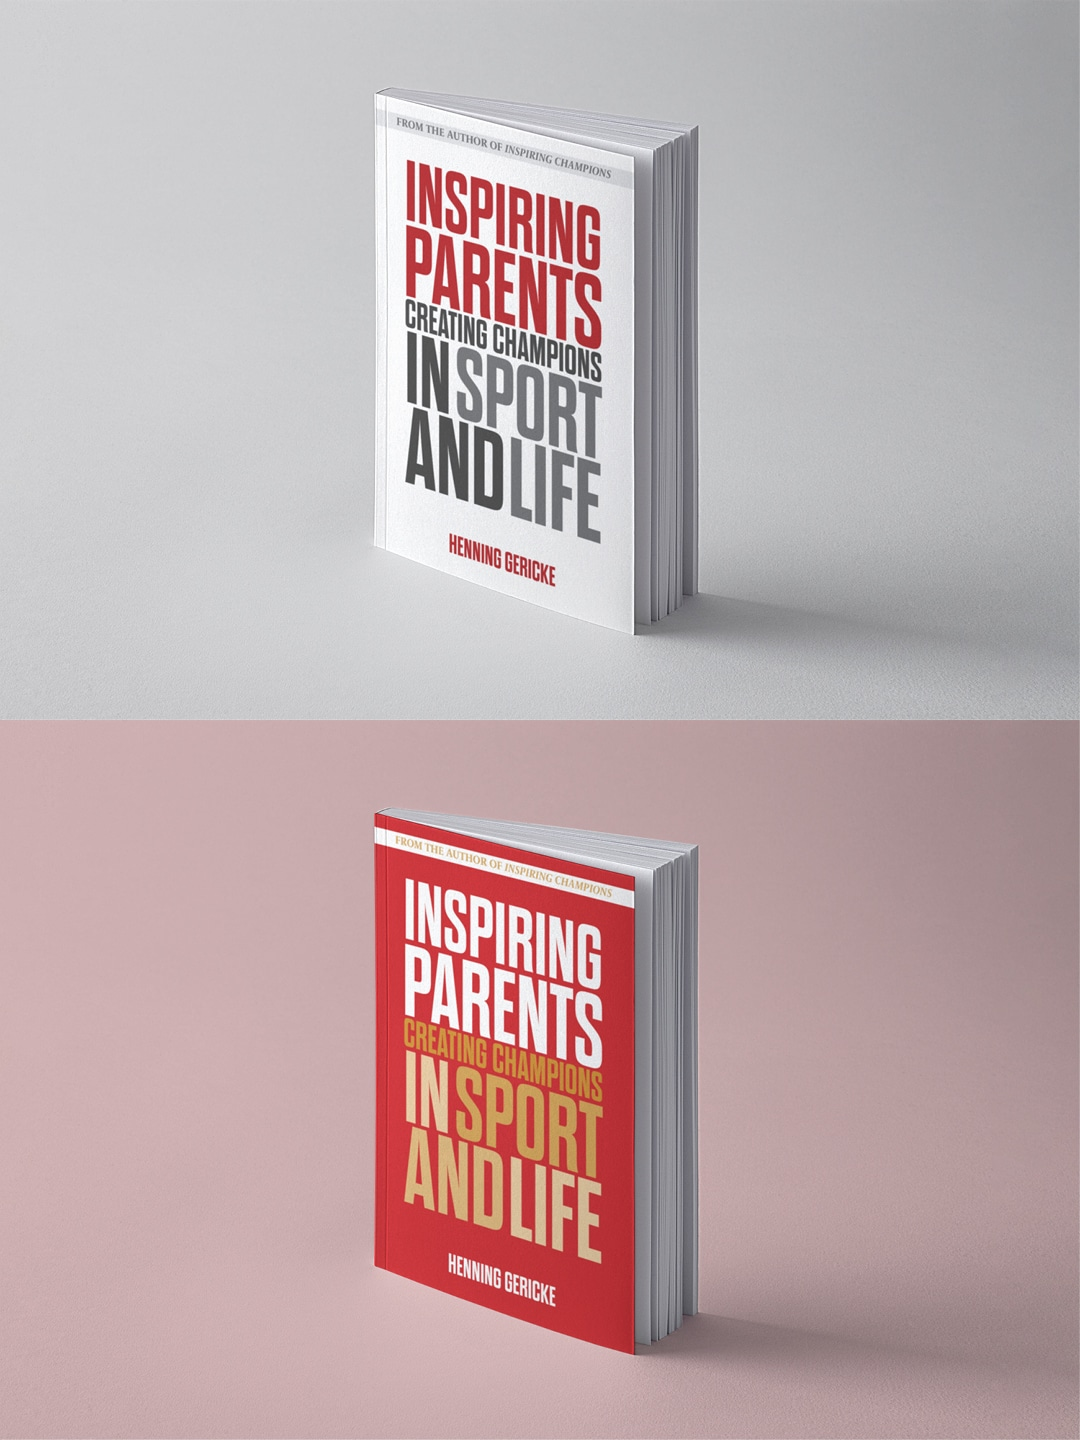 Book Layout and Cover Design